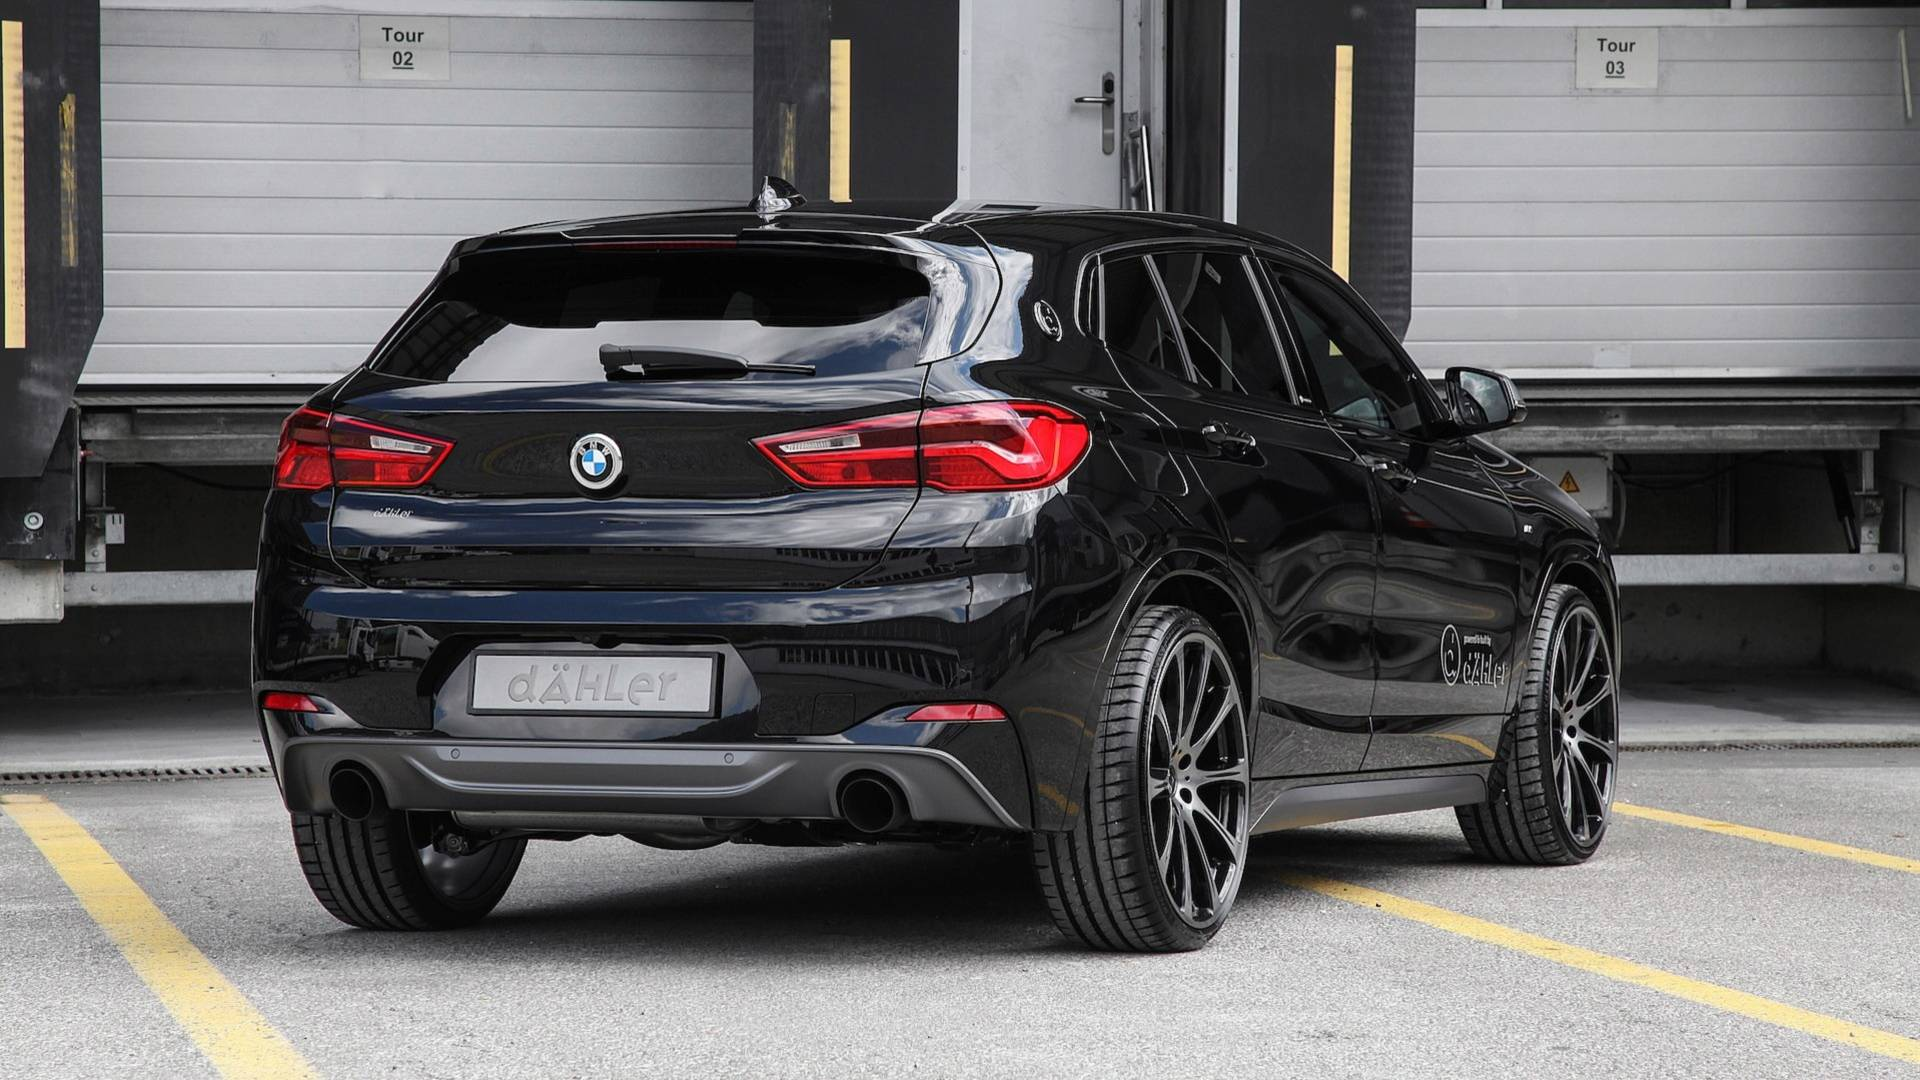 BMW X2 by Dahler (28)